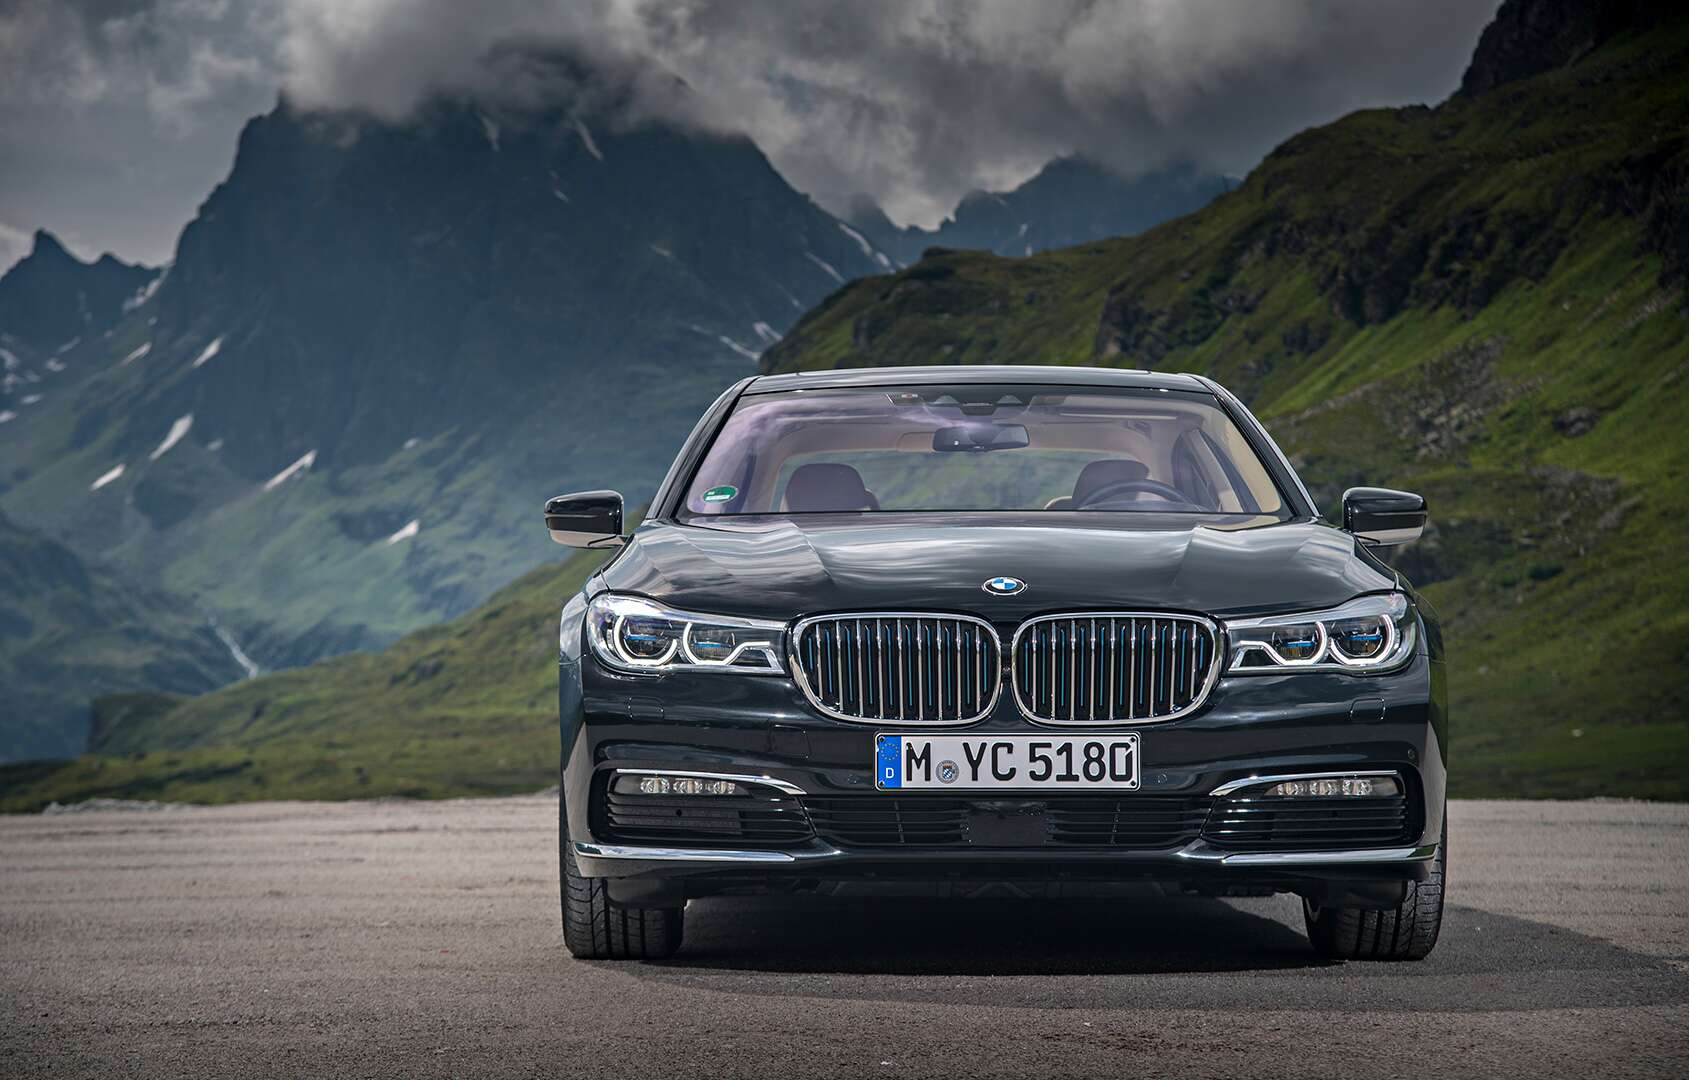 2018 Bmw 740e Xdrive Iperformance Hybrid Review Plug It In For 10